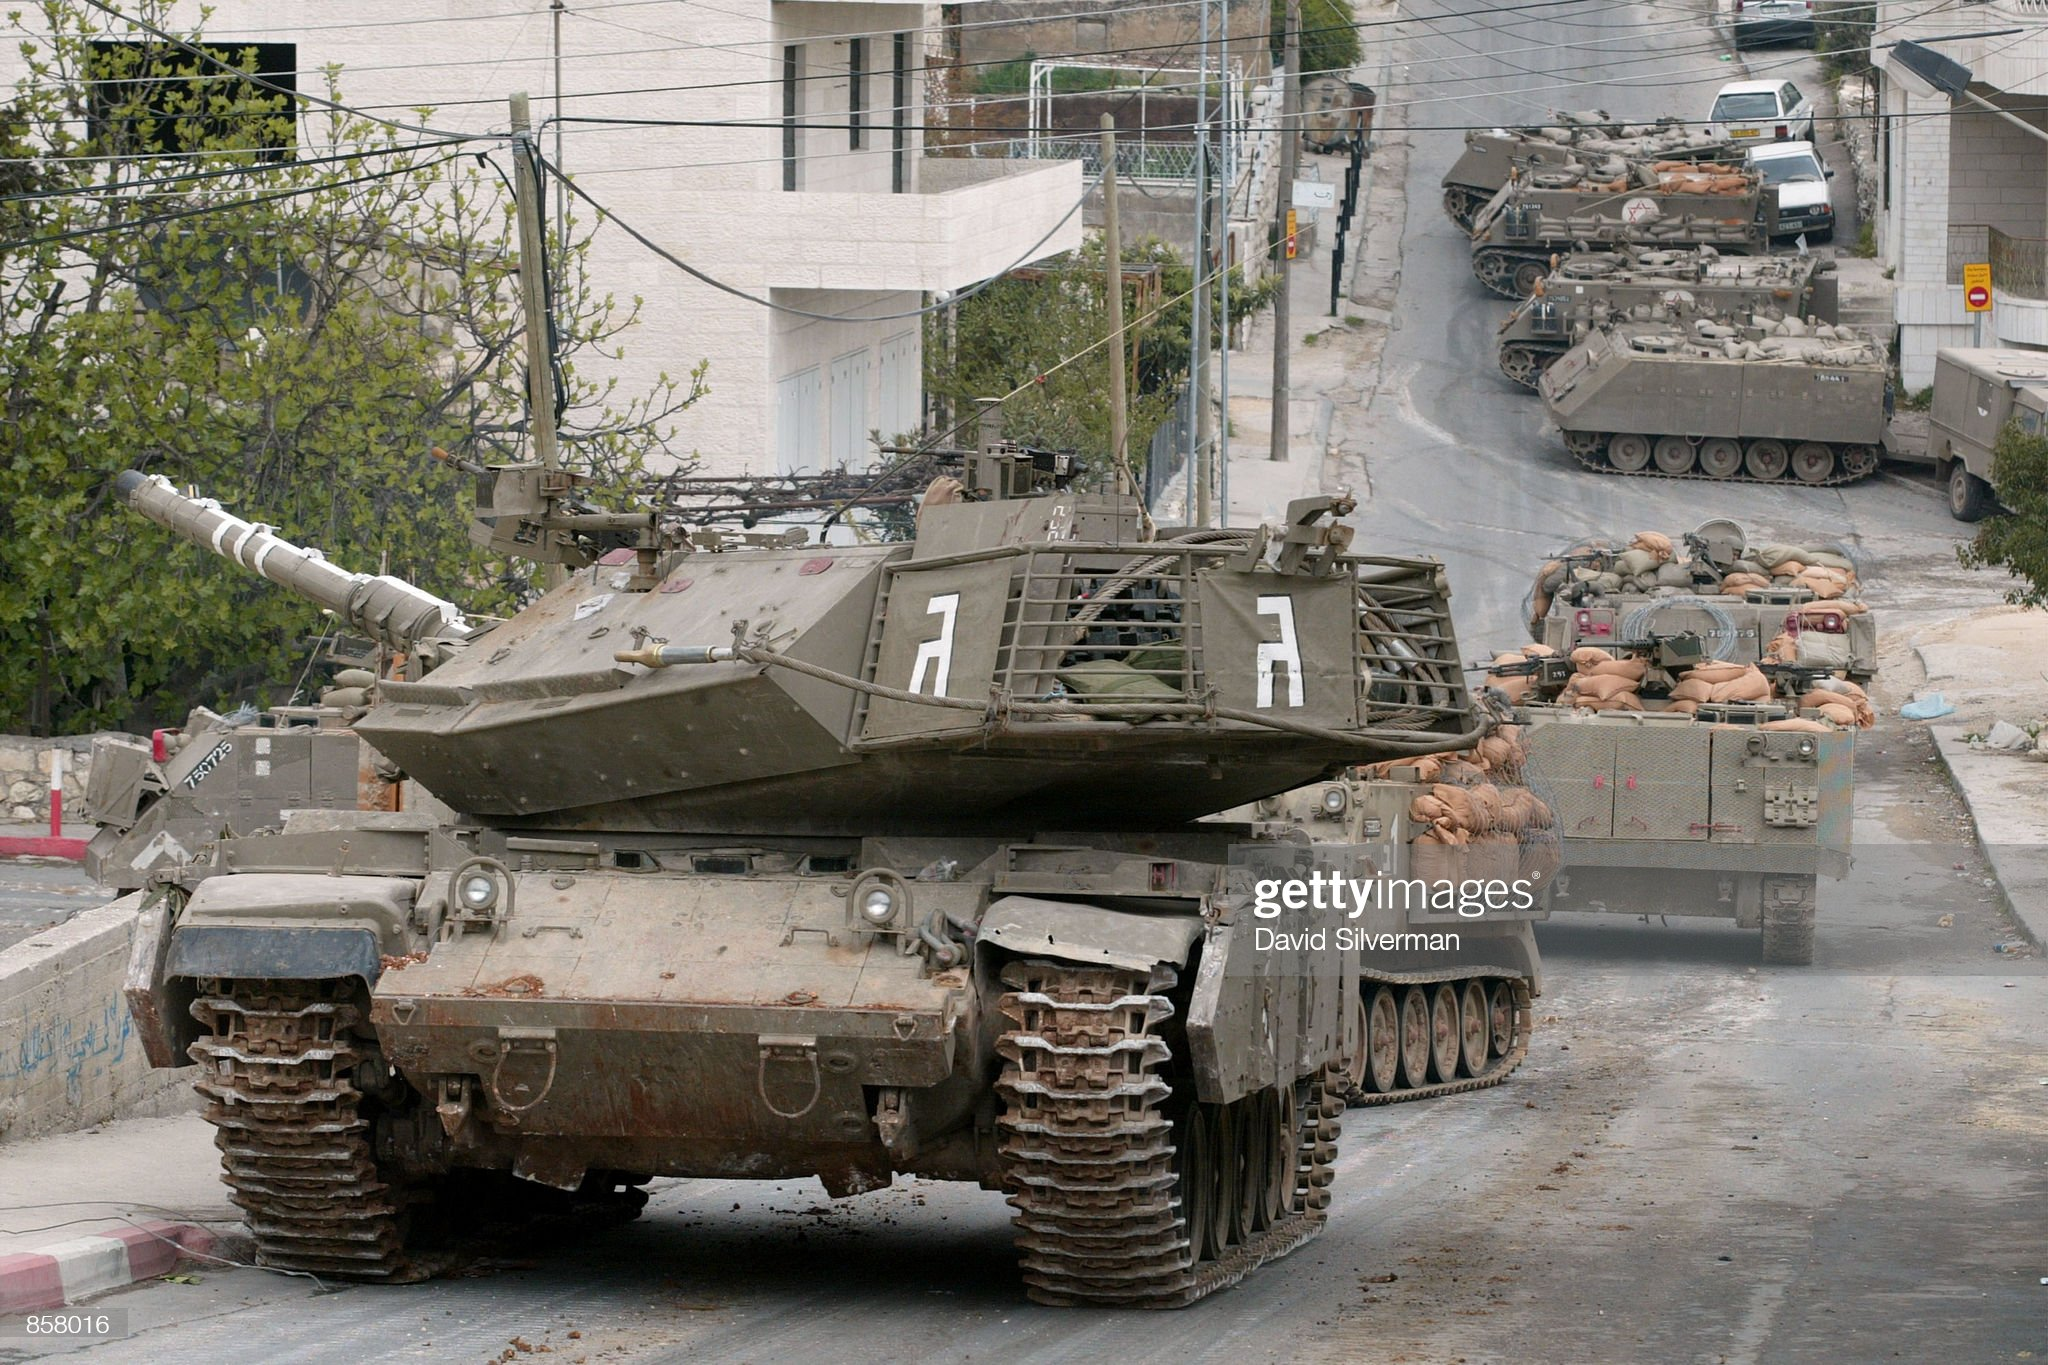 https://media.gettyimages.com/photos/an-israeli-army-tank-guards-the-head-of-an-armored-column-during-picture-id858016?s=2048x2048